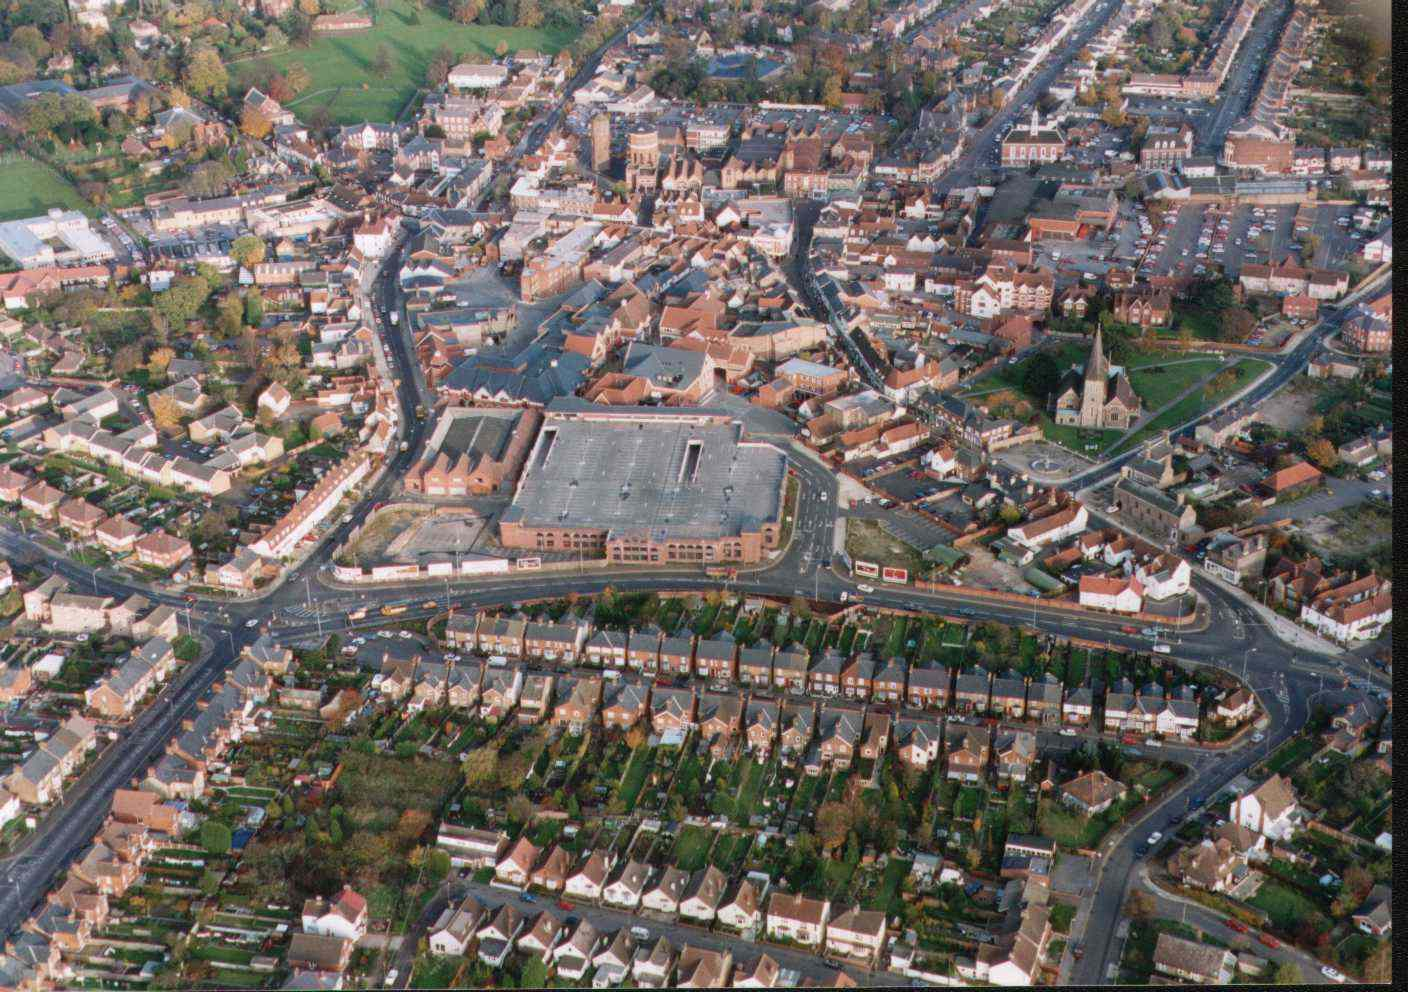 BRAINTREE town centre (overview)